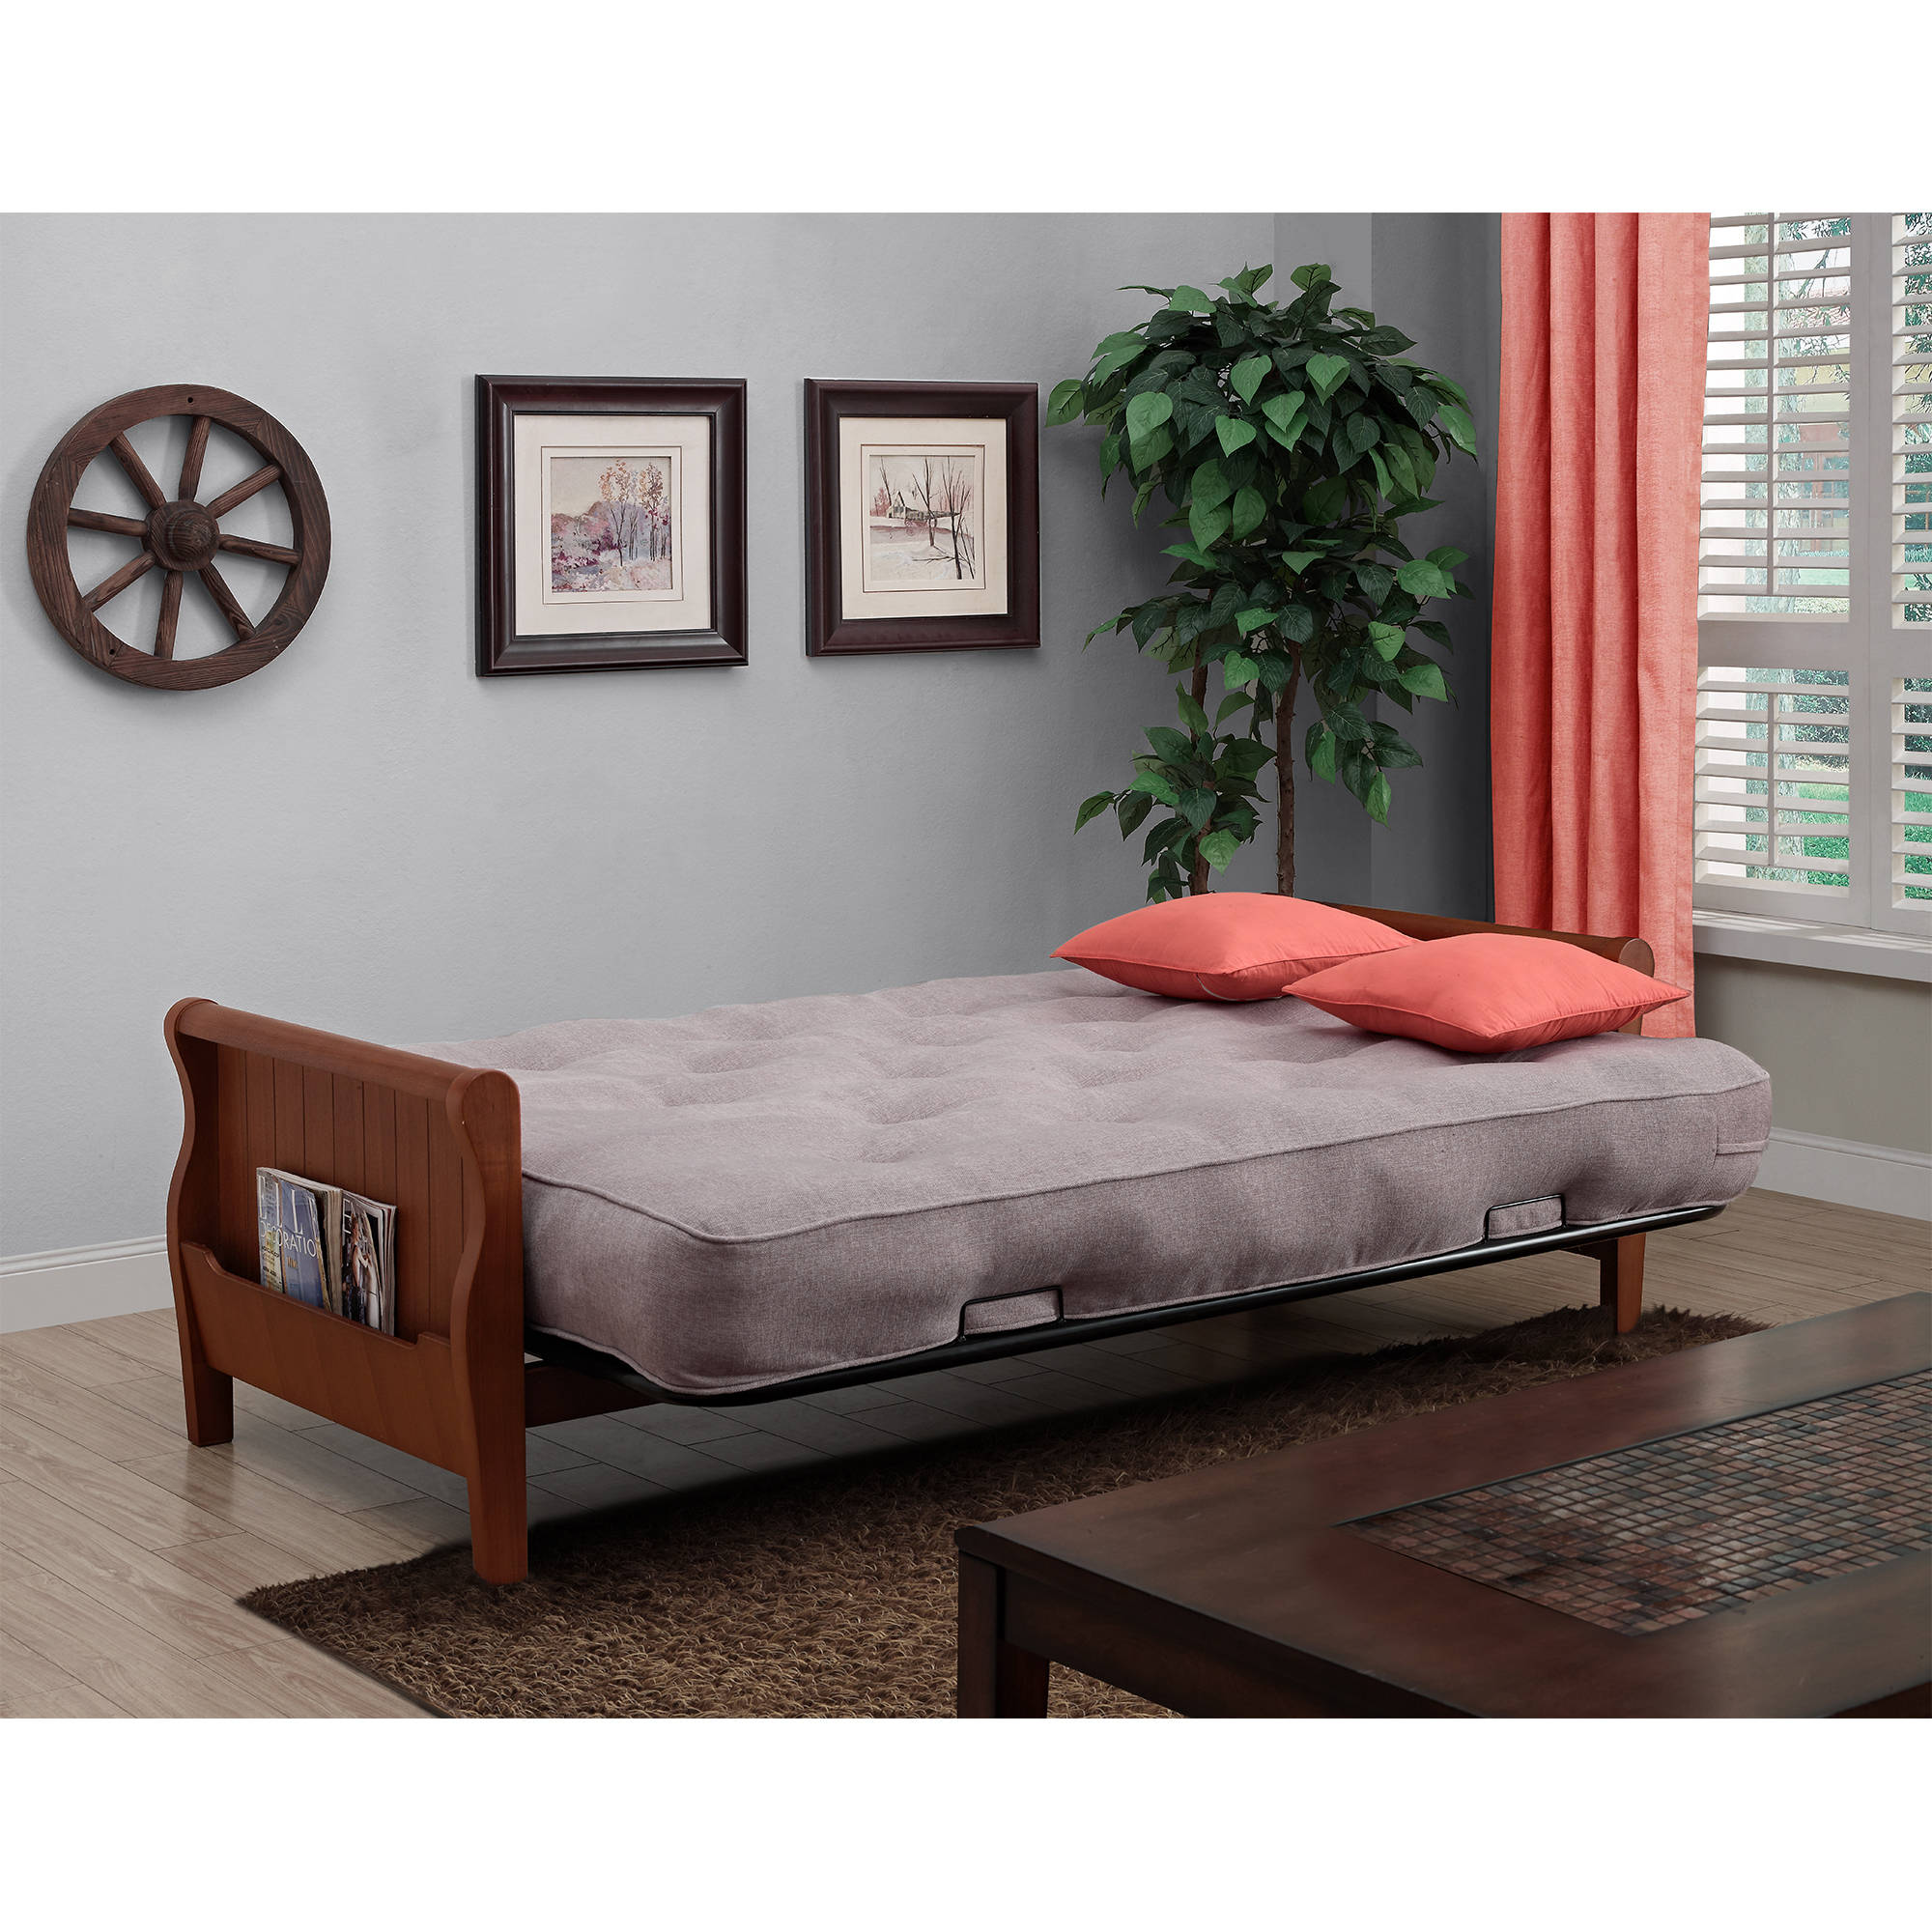 "Better Homes and Gardens Wood Arm Futon With 8"" Coil Mattress, Multiple  Colors - Walmart.com"